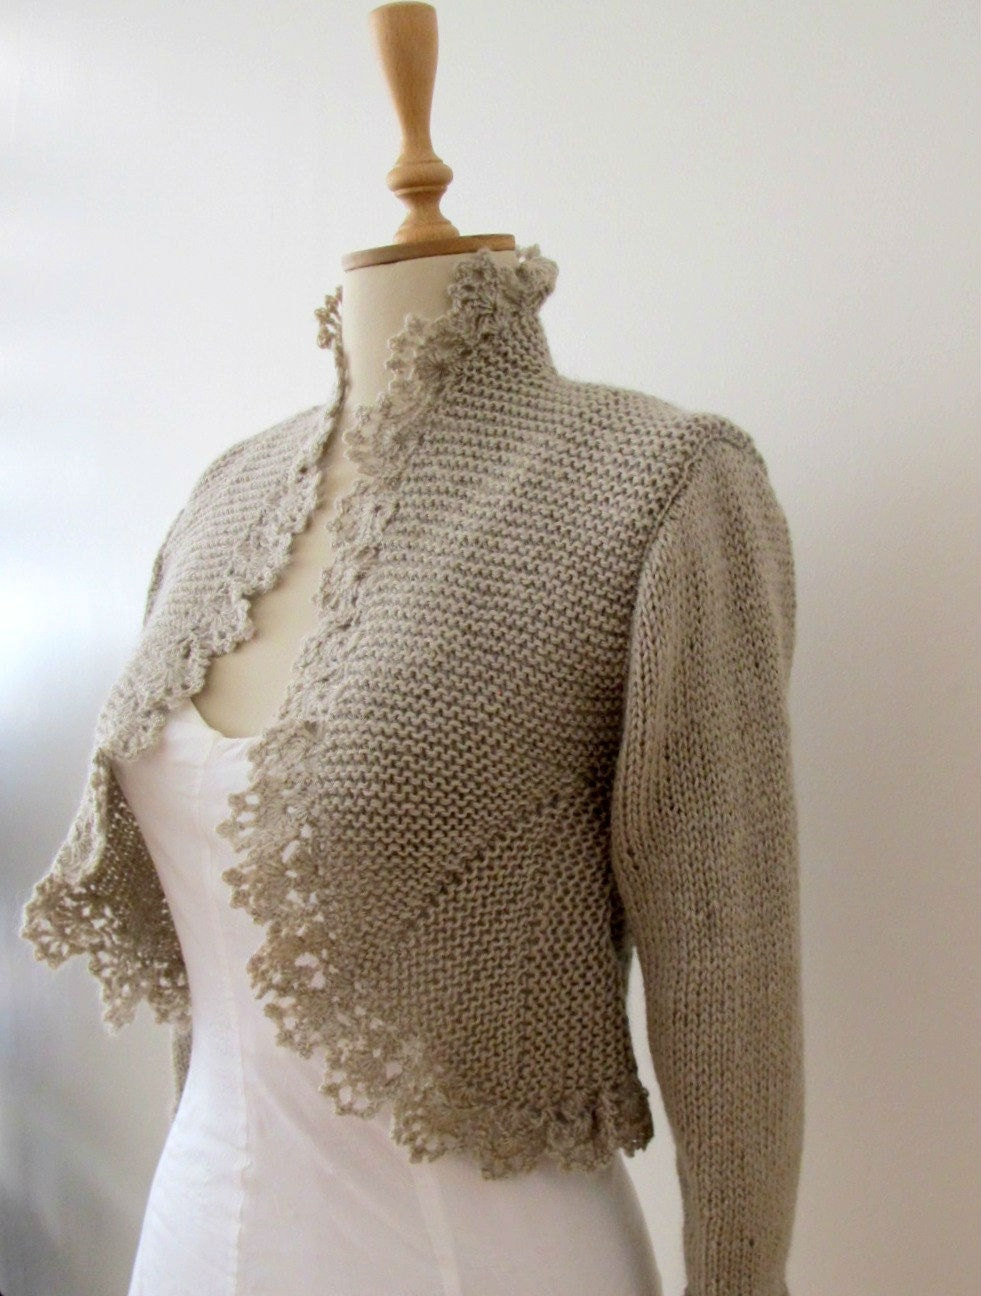 Sweater Knit : Hand knit sweater knitting knitted cardigan by